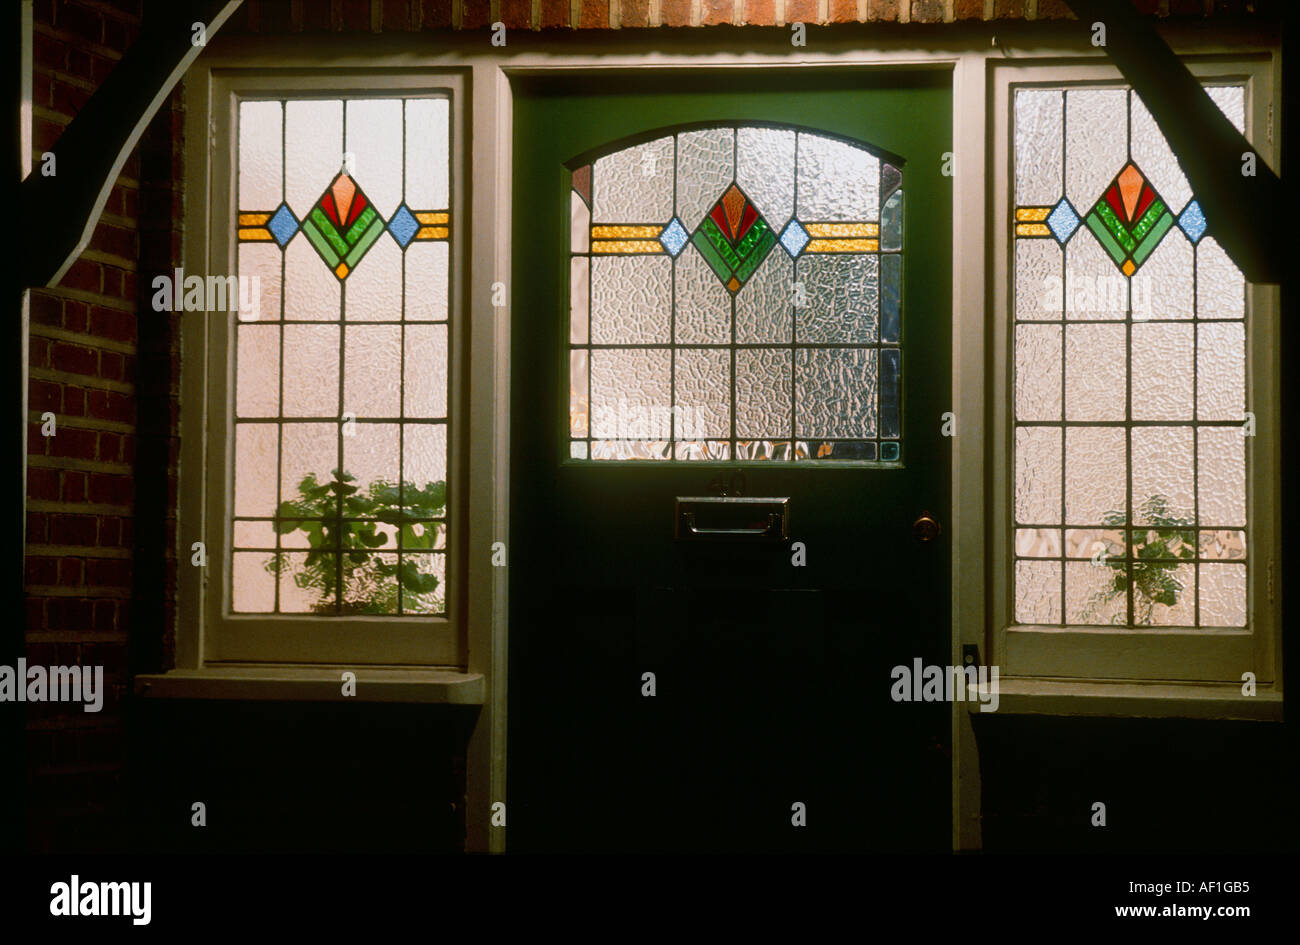 945 #A36728  Art Deco Stained Glass Front Door At Night British Housing London pic Front Doors Australia 41811300